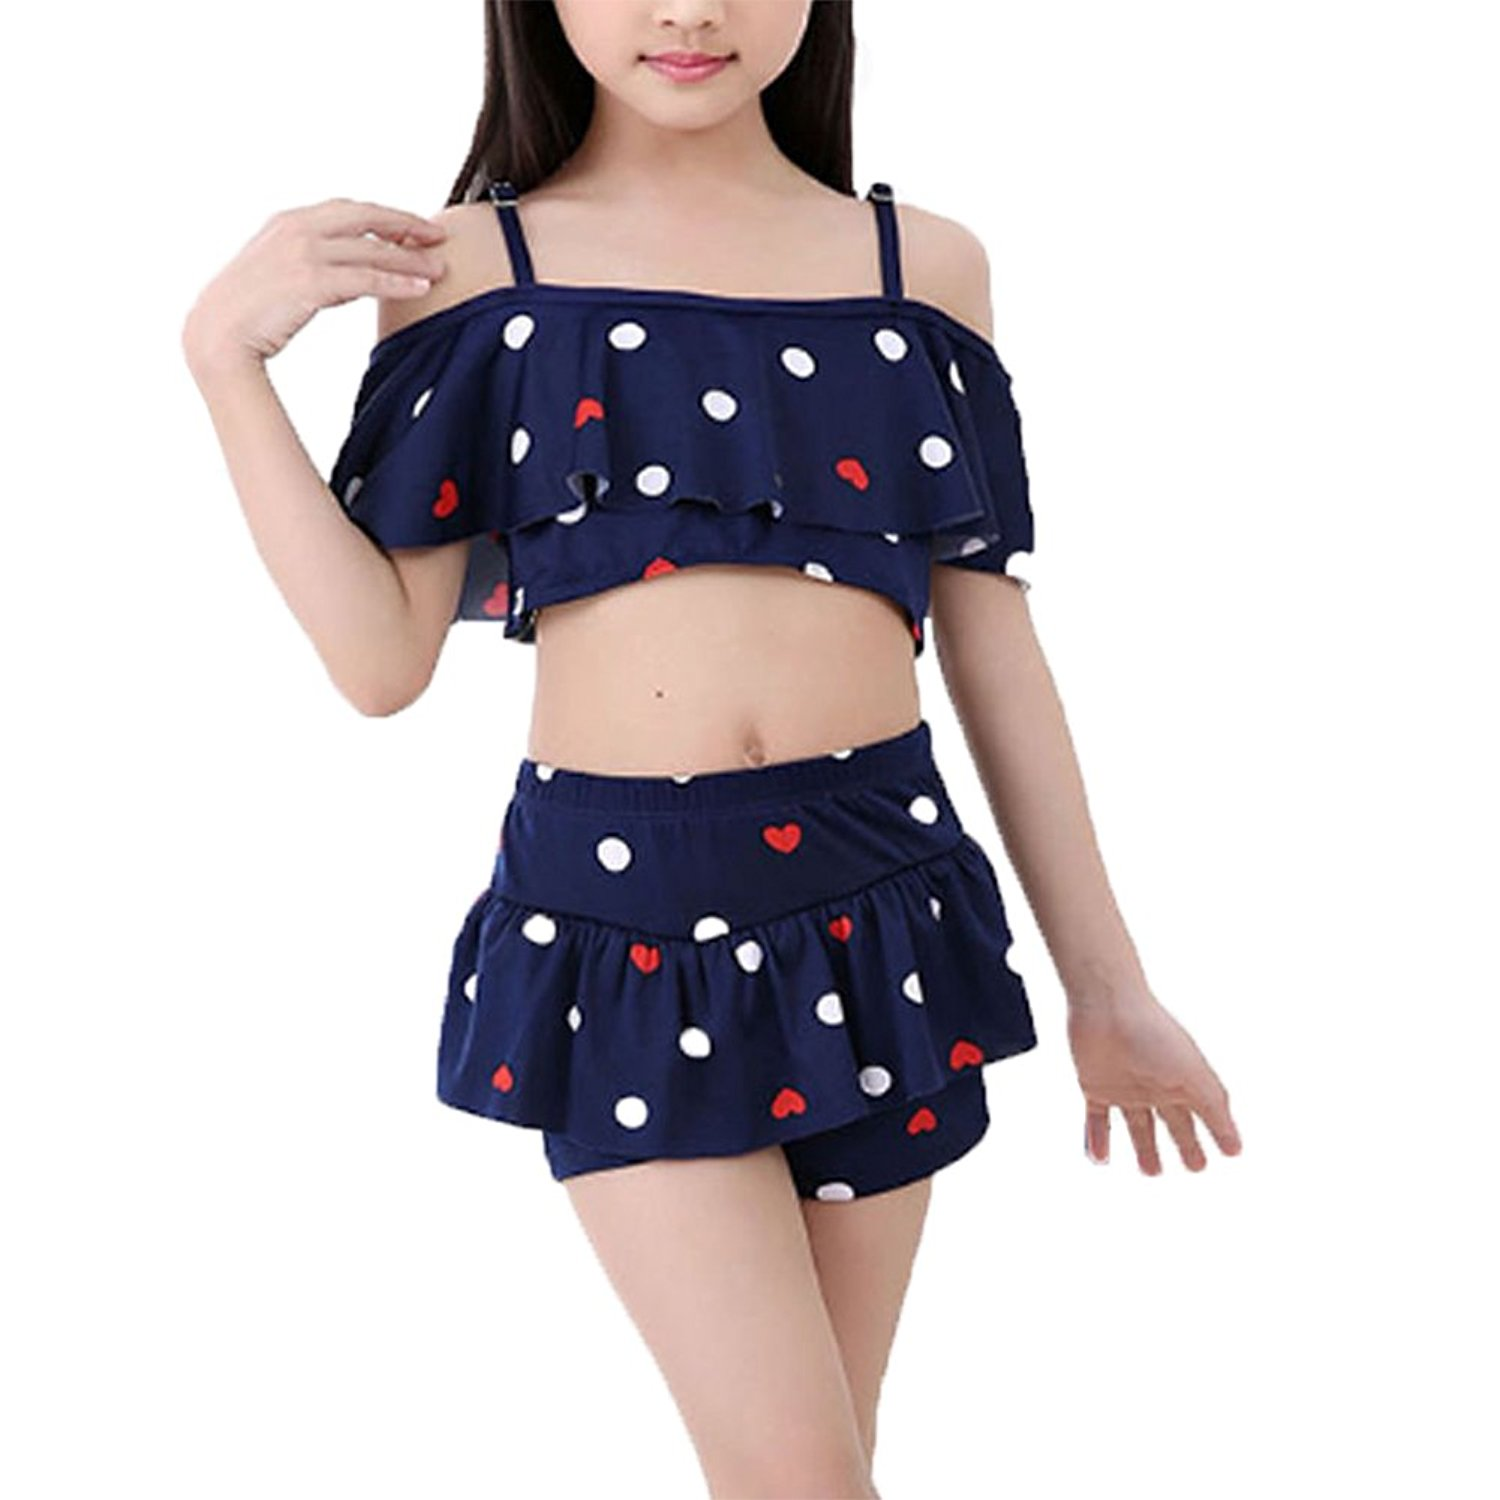 c775c3ccaa6 Get Quotations · MyCHIC Girls Kids 2 Piece Tankini Swimwear Swimsuit  Bathing Suits Tops with Shorts